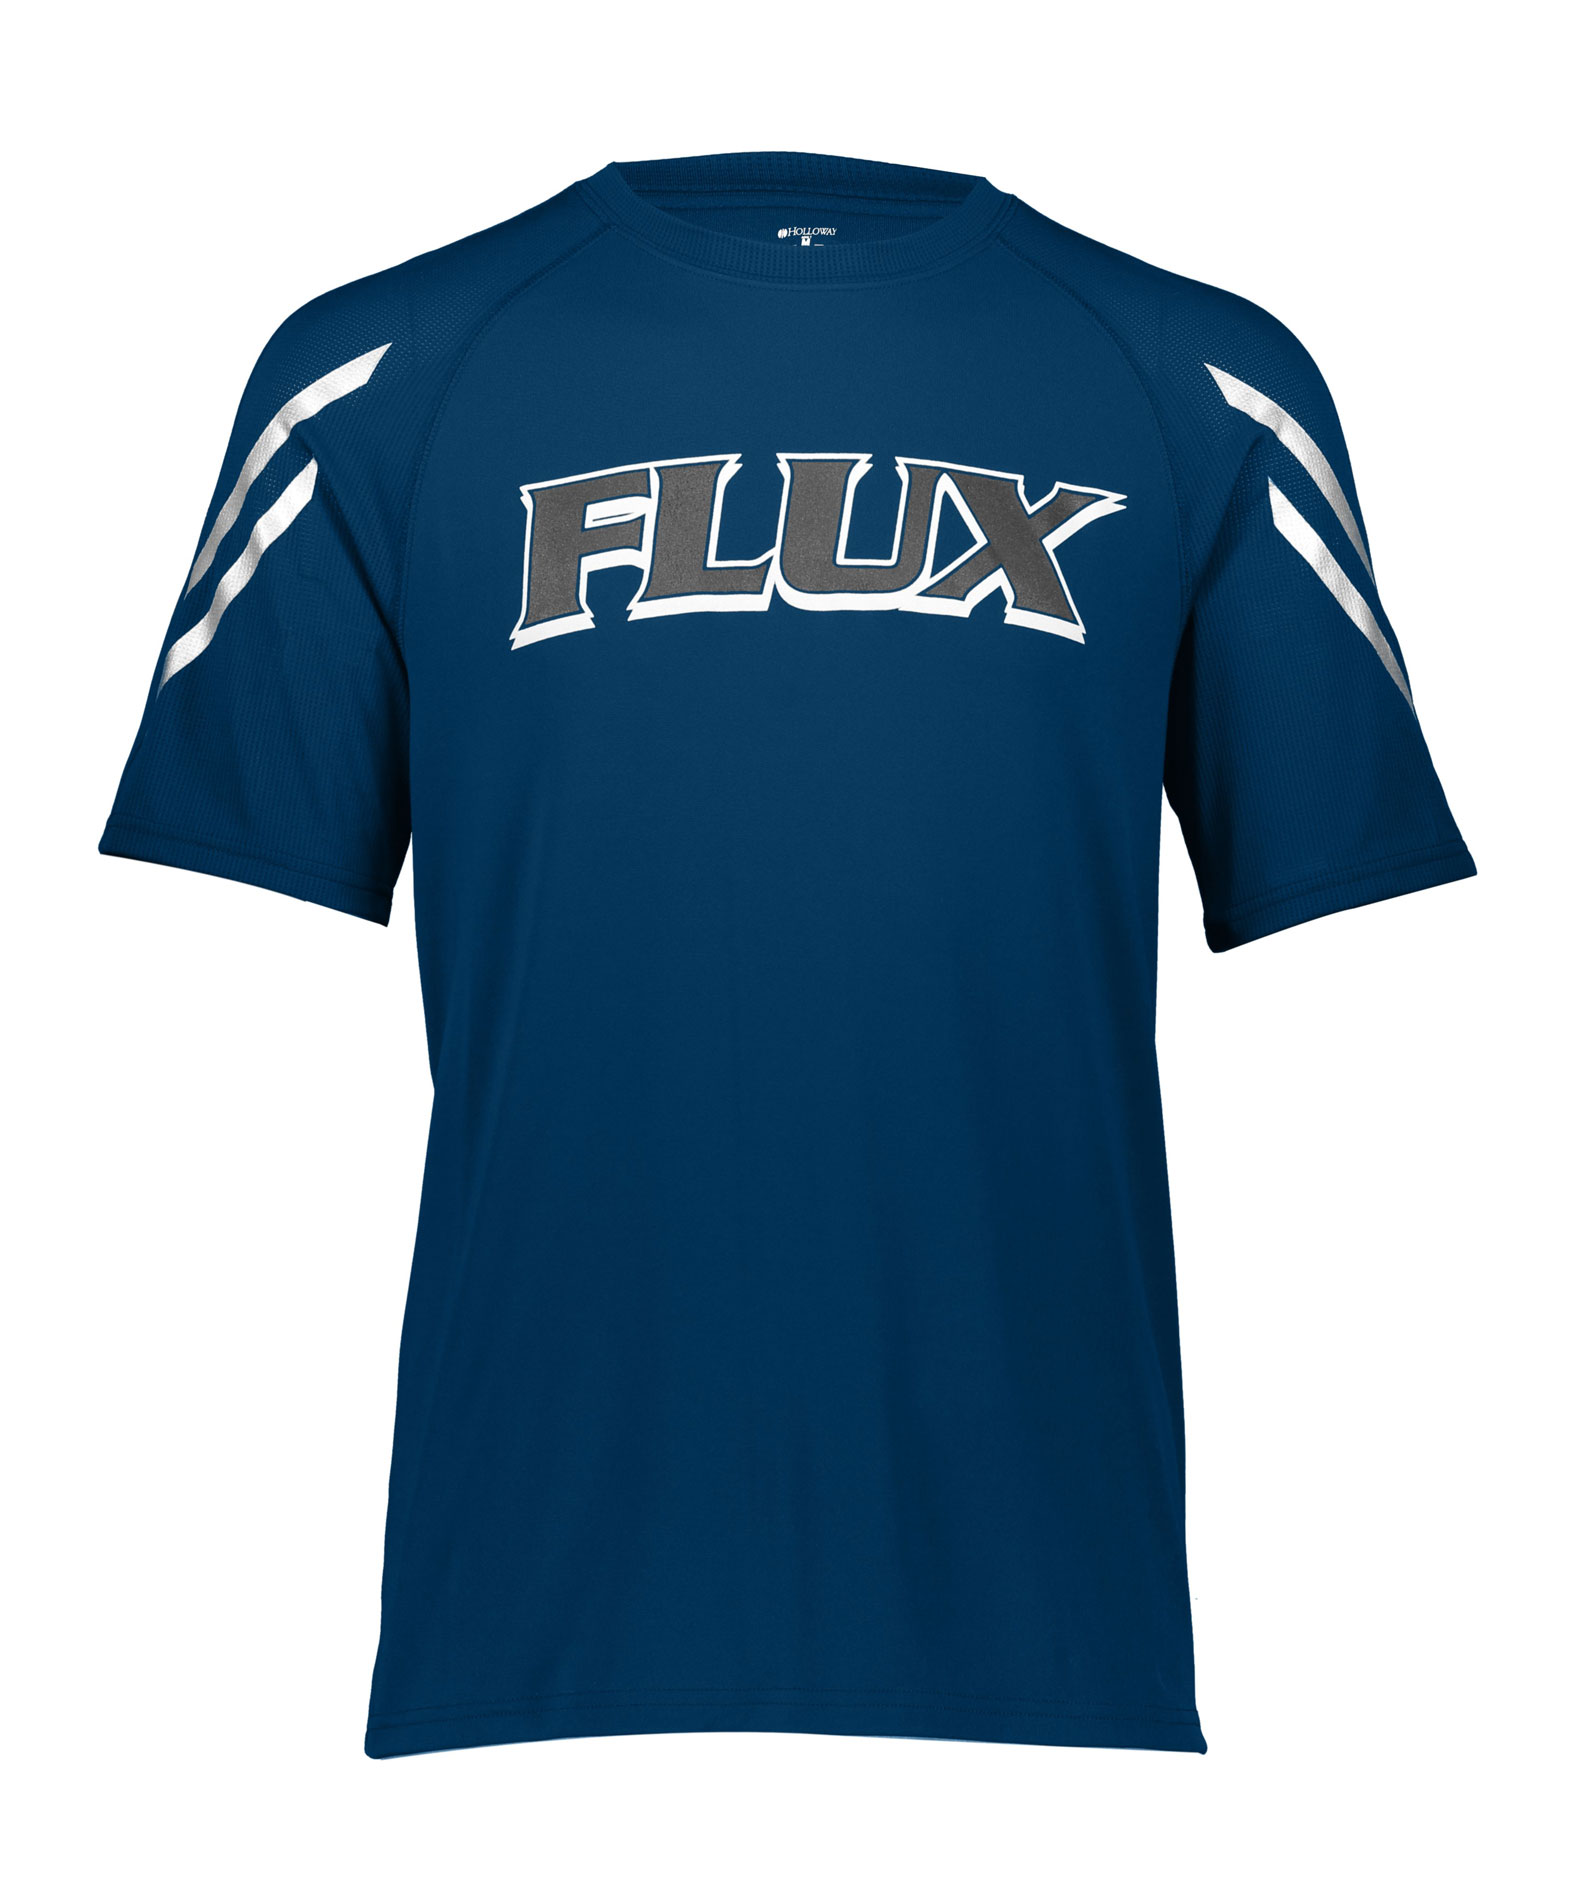 Mens Flux Short Sleeve Shirt